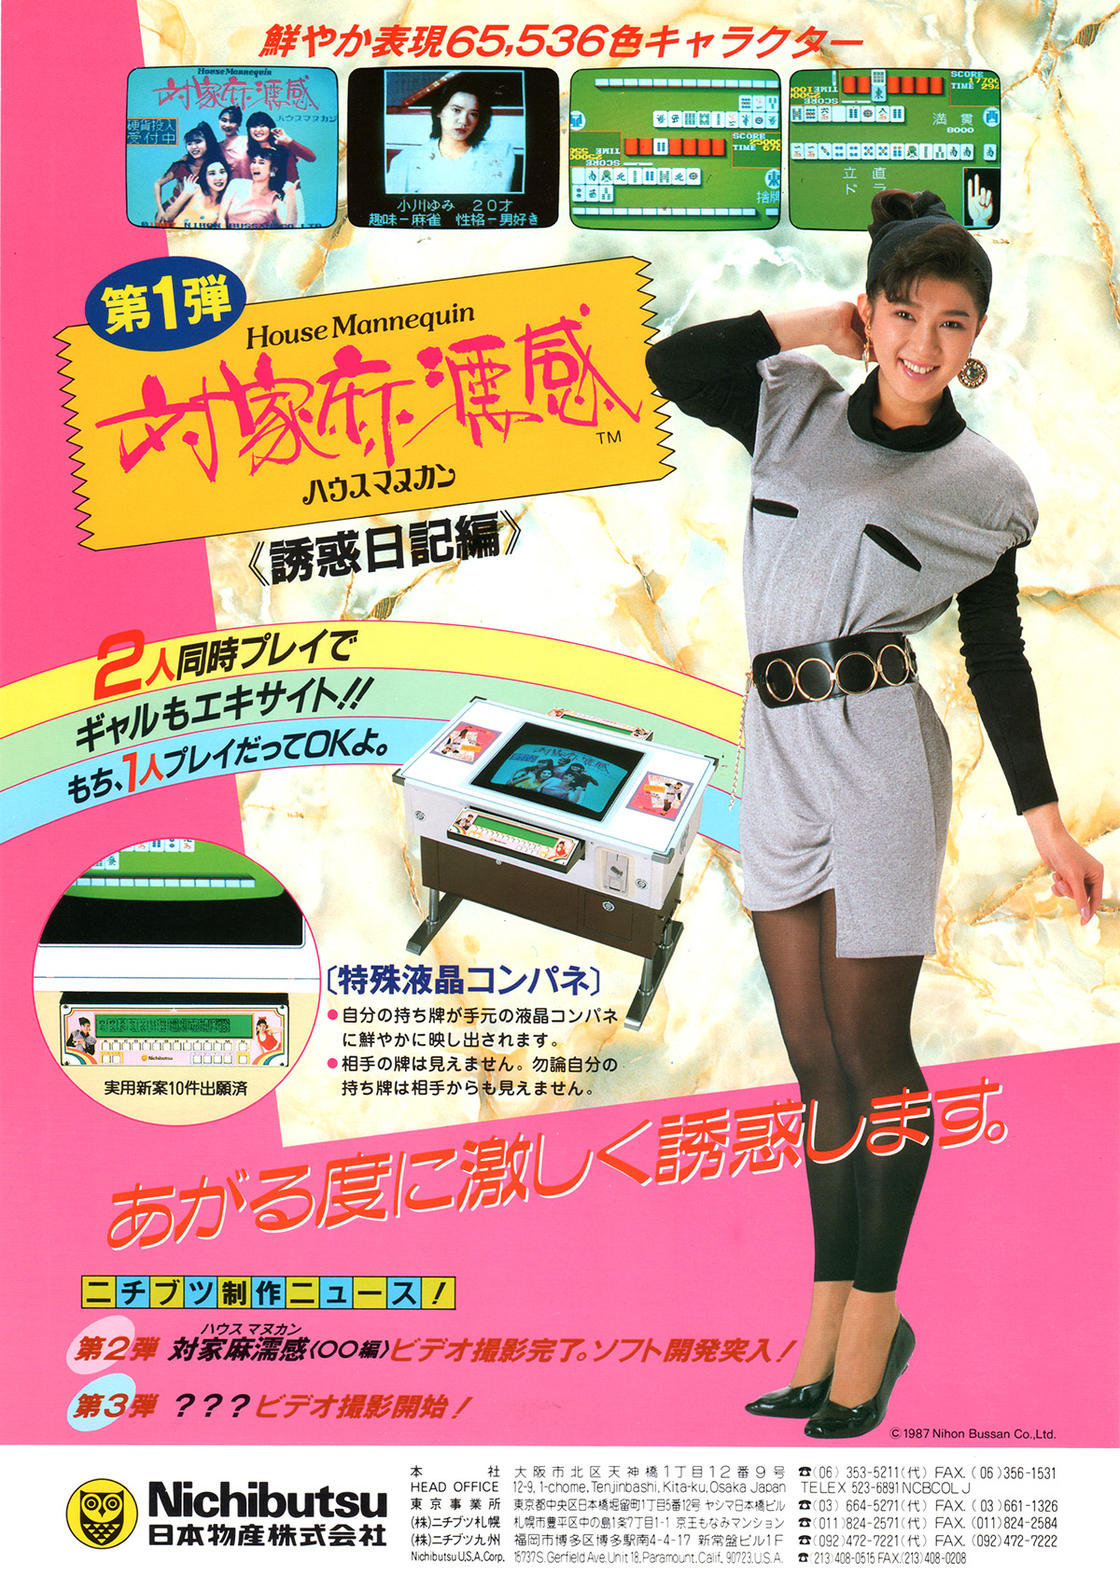 publicites-japonaises-jeux-video-1980-14.jpg